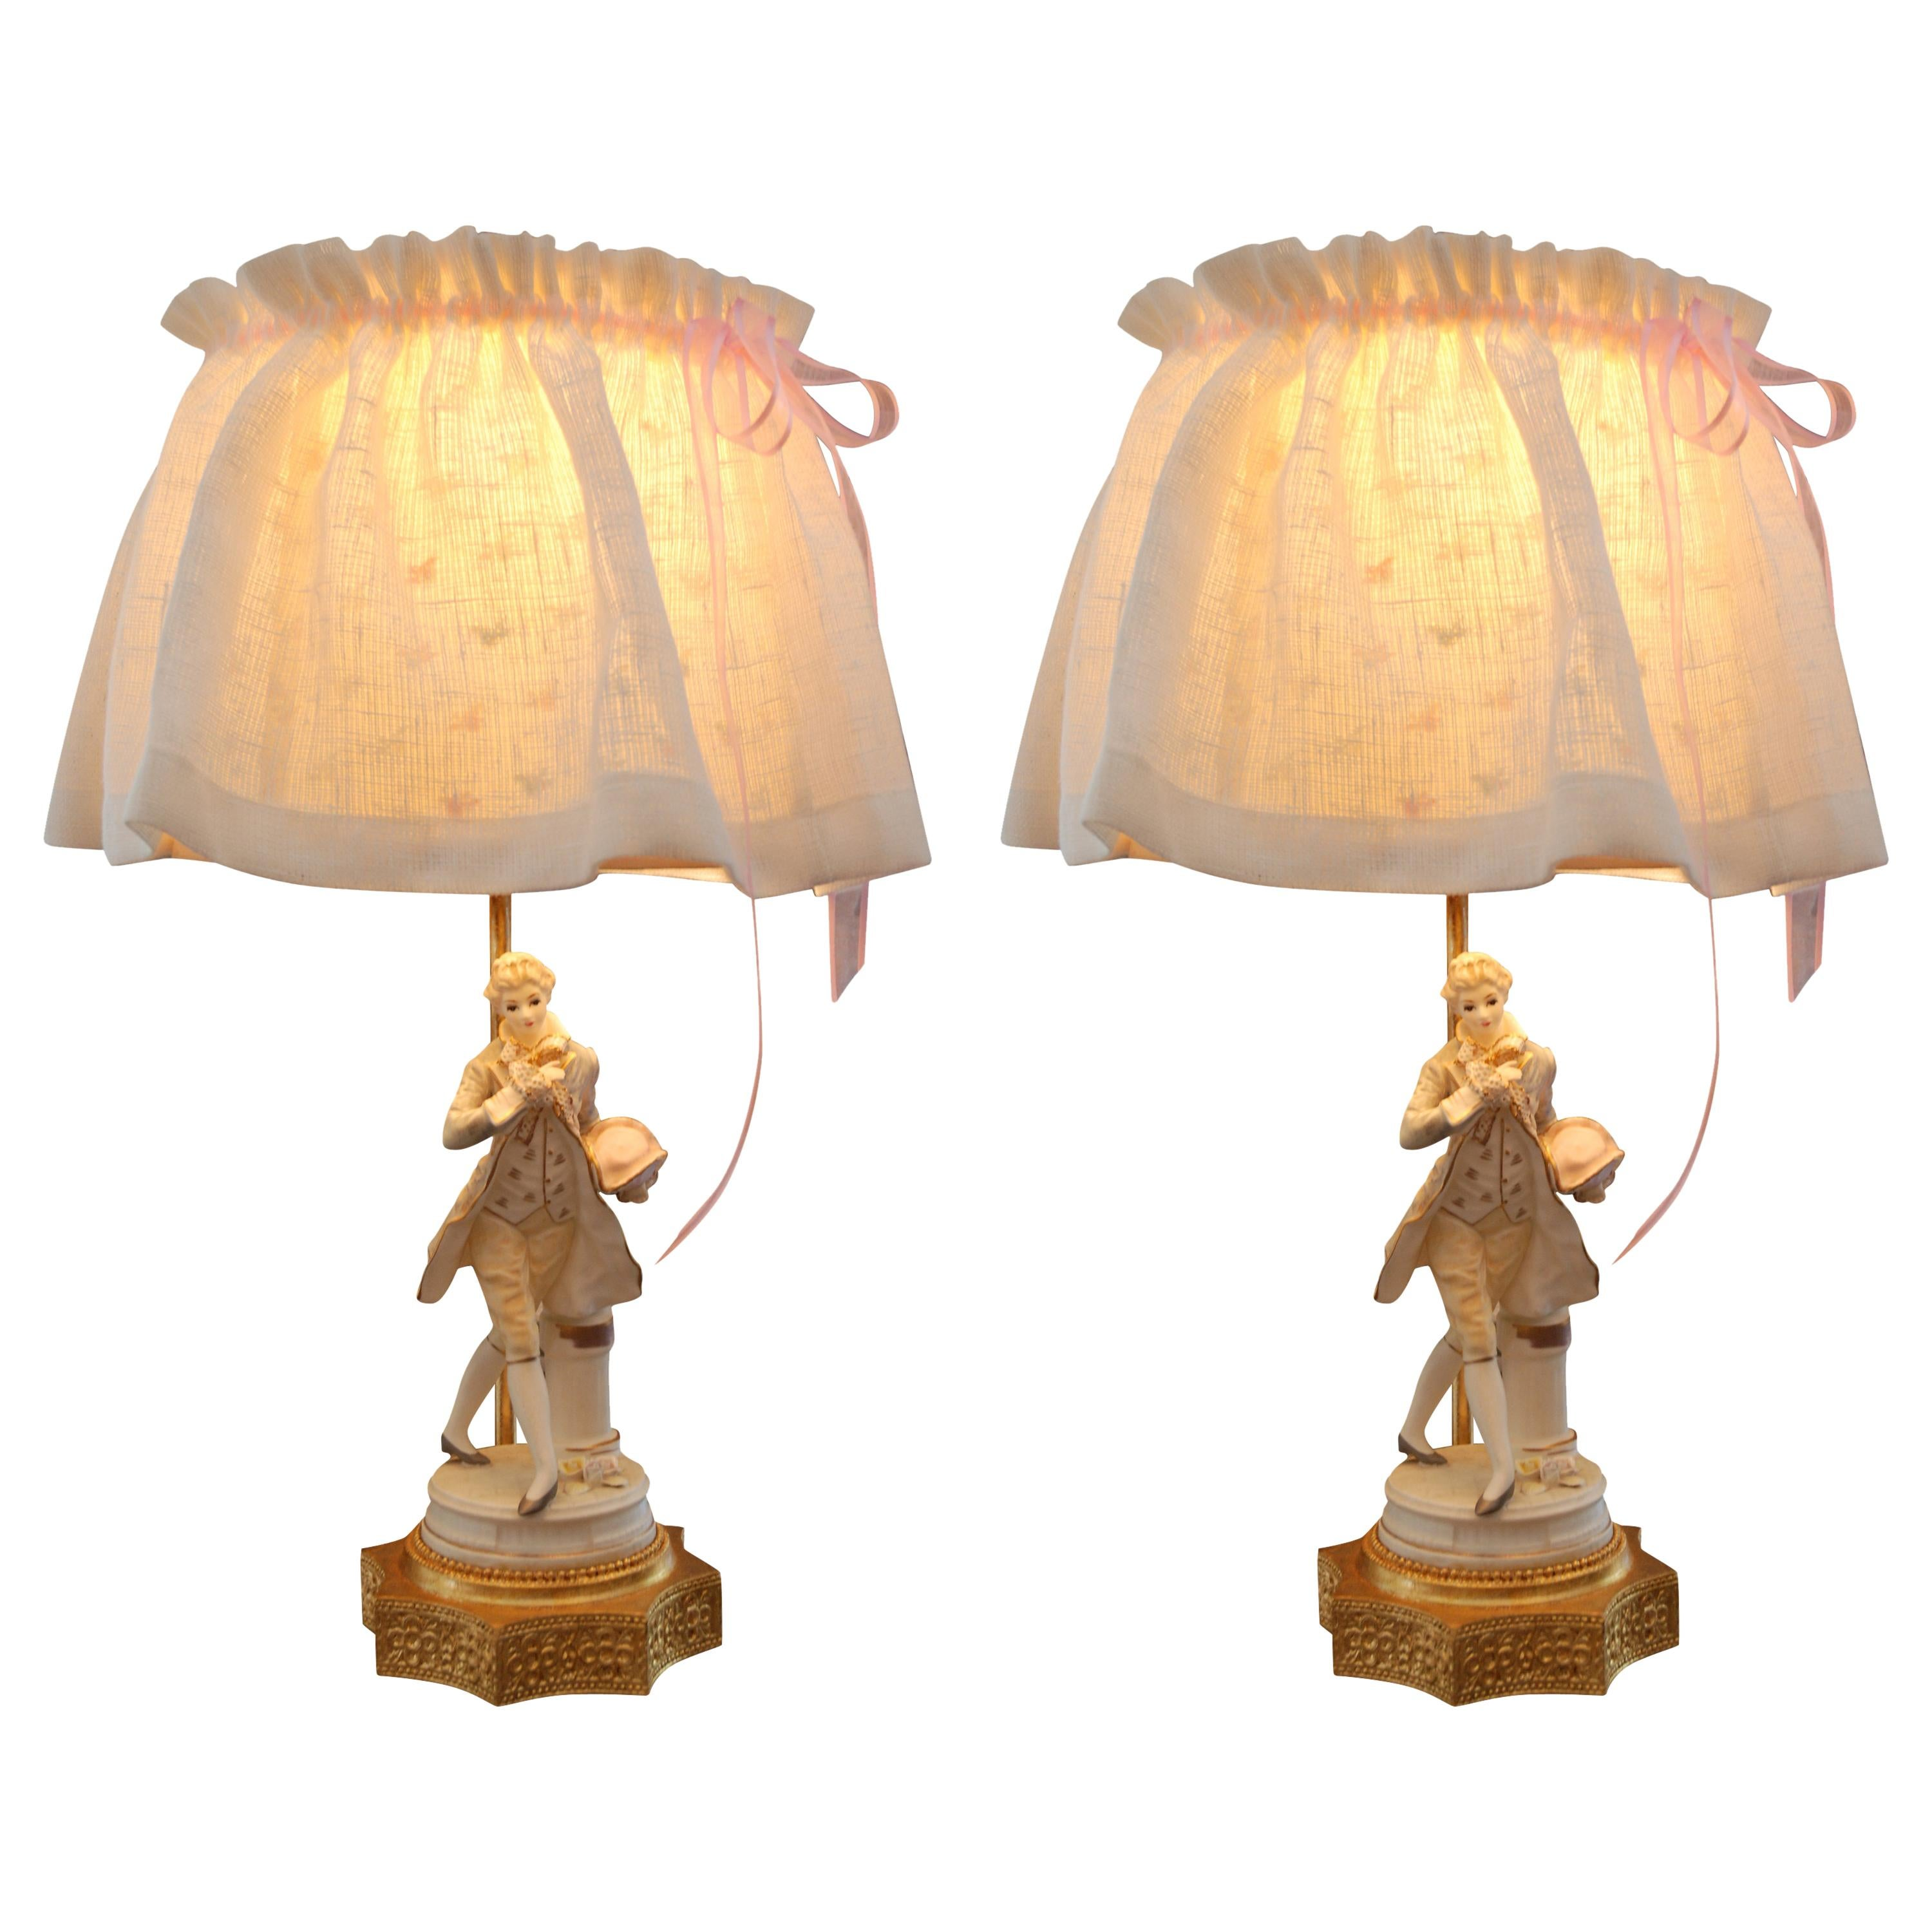 Pair of Lamps with Porcelain Figurines